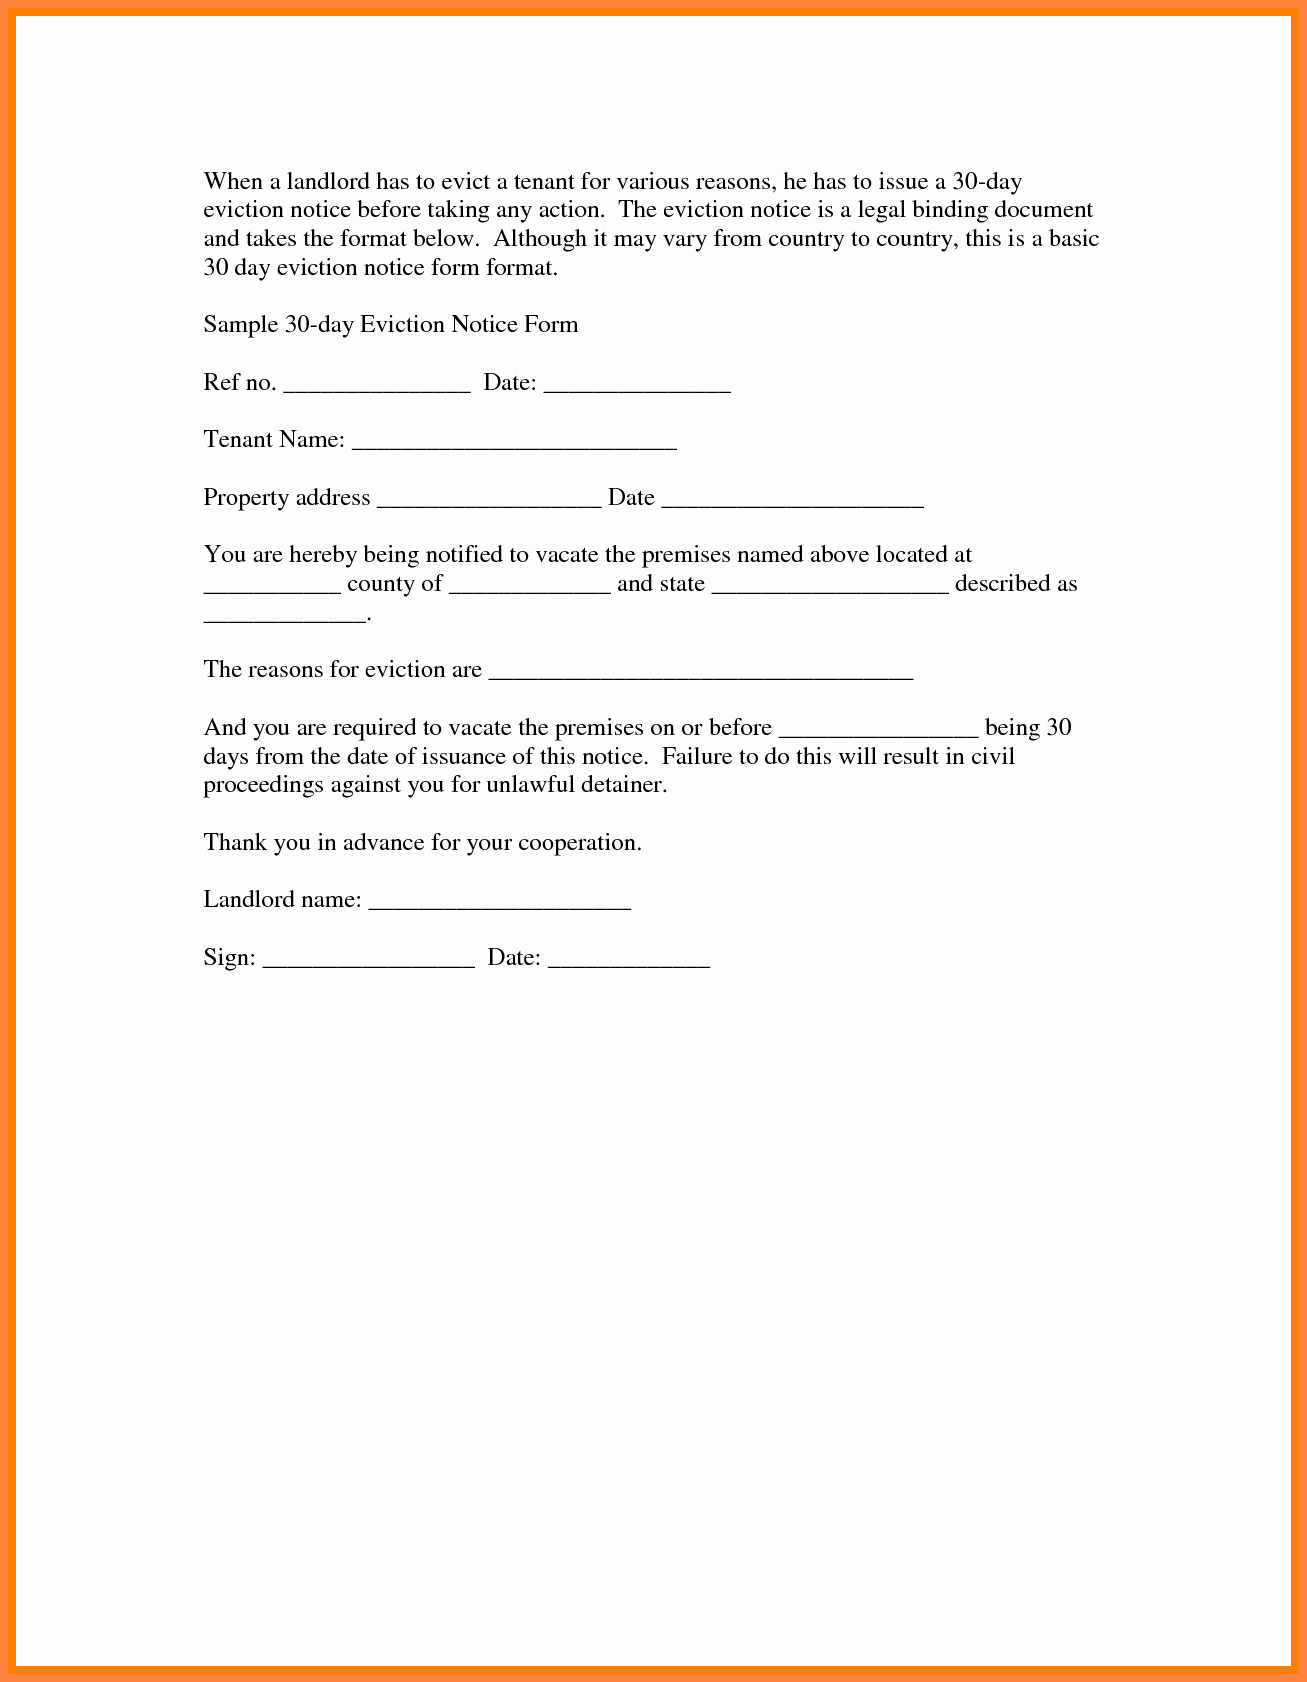 Eviction Notice Template Pdf Awesome 6 30 Day Eviction Notice Pdf